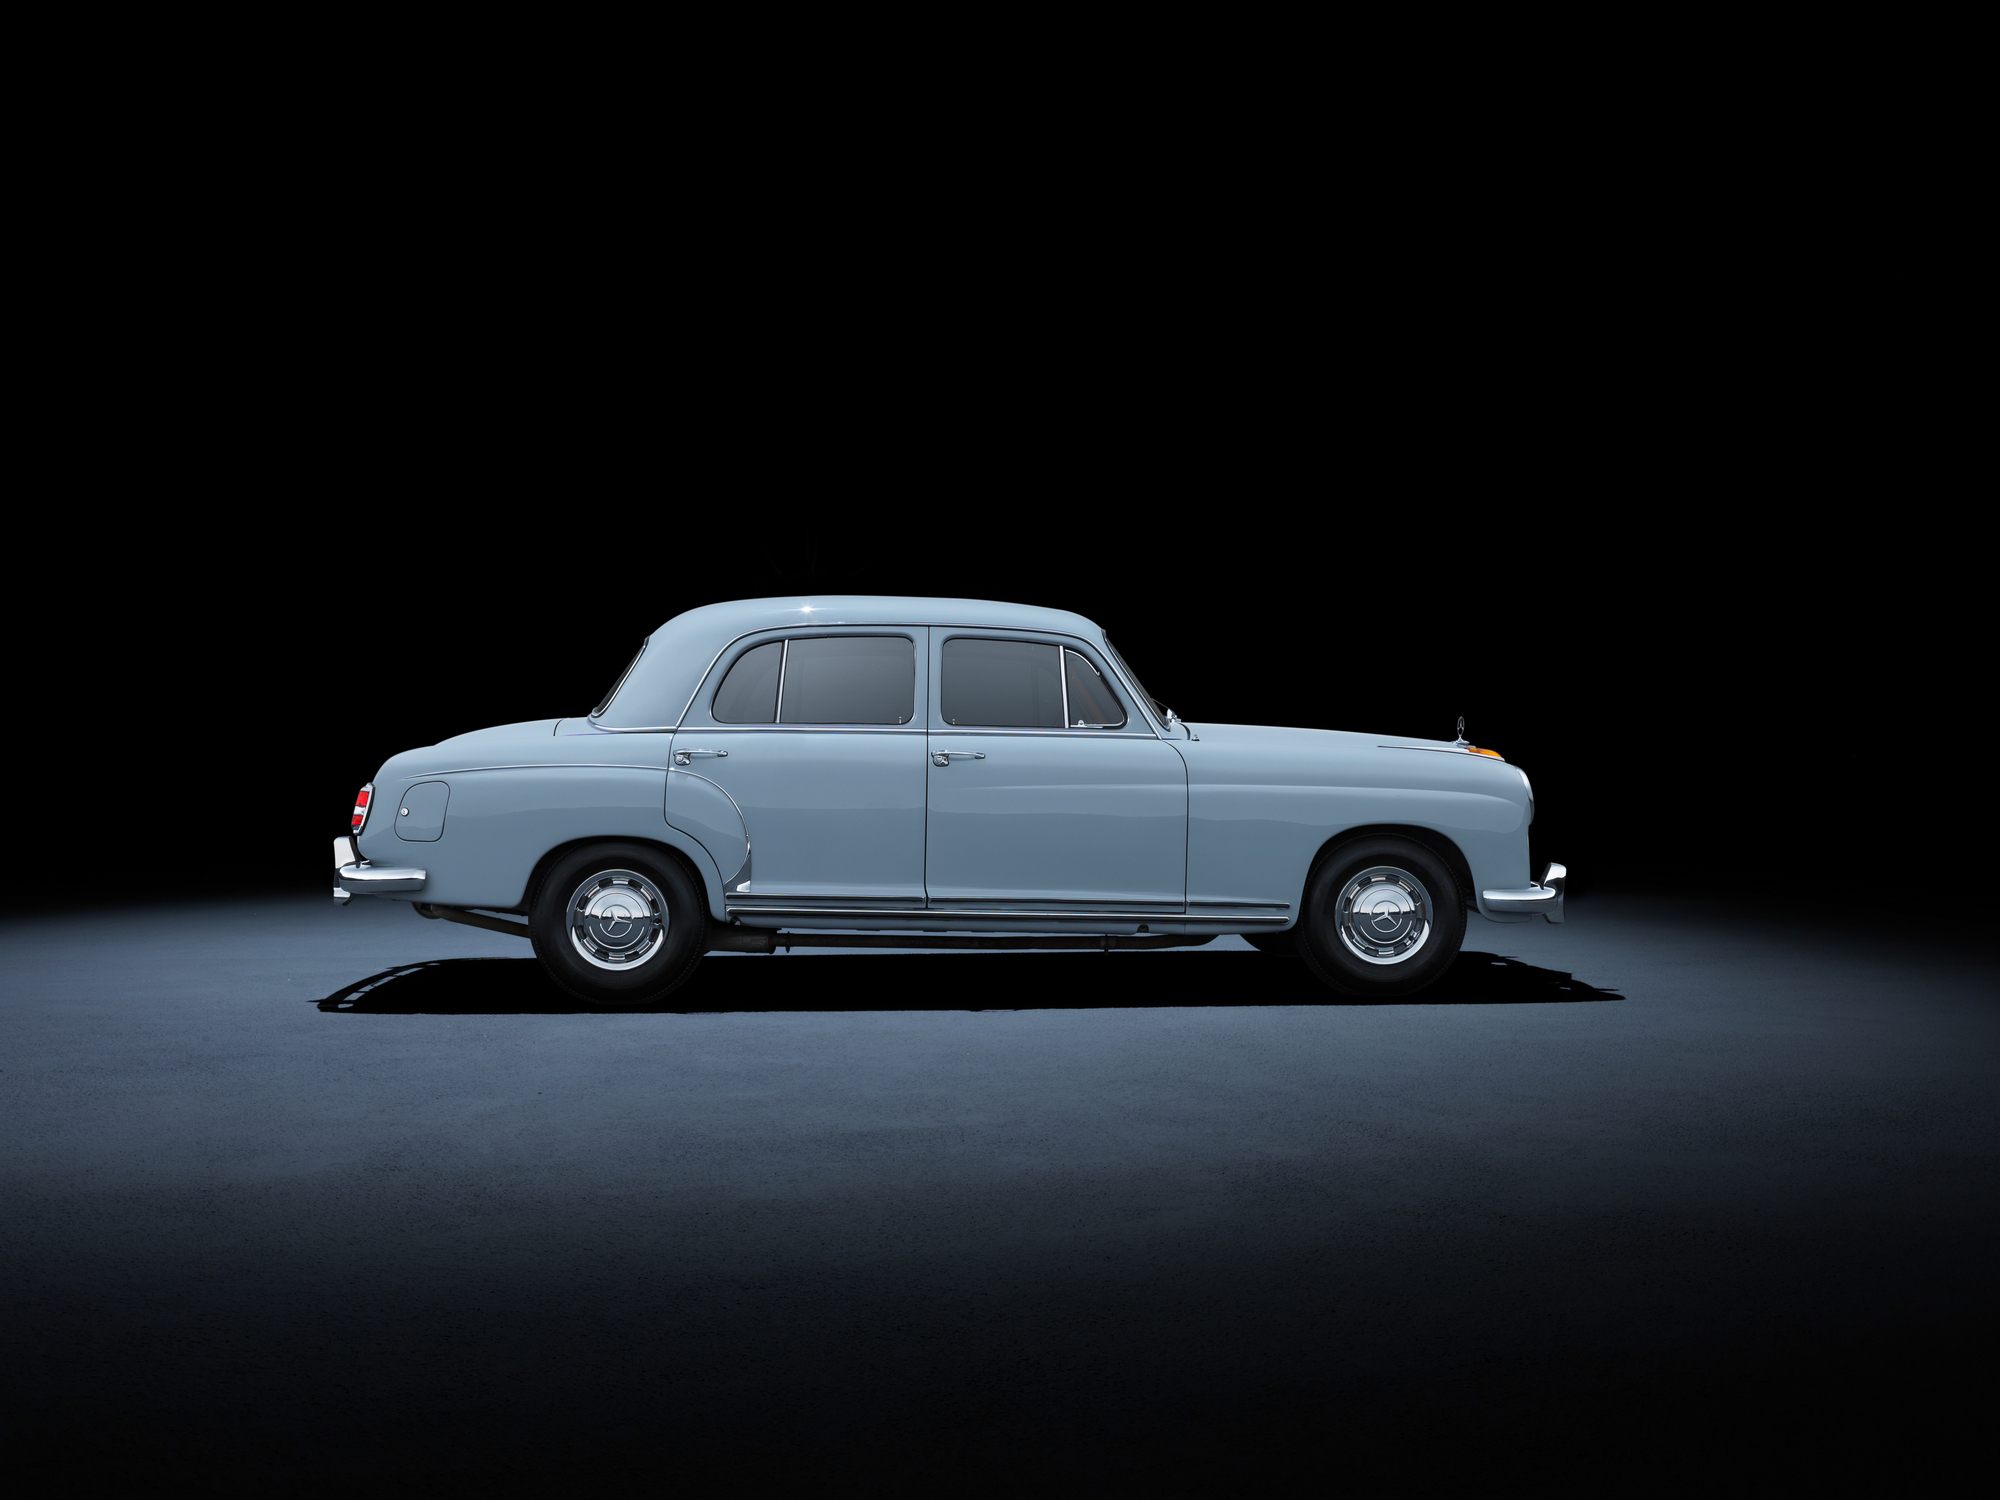 Mercedes-Benz 220 (W 180, 1954 to 1956)